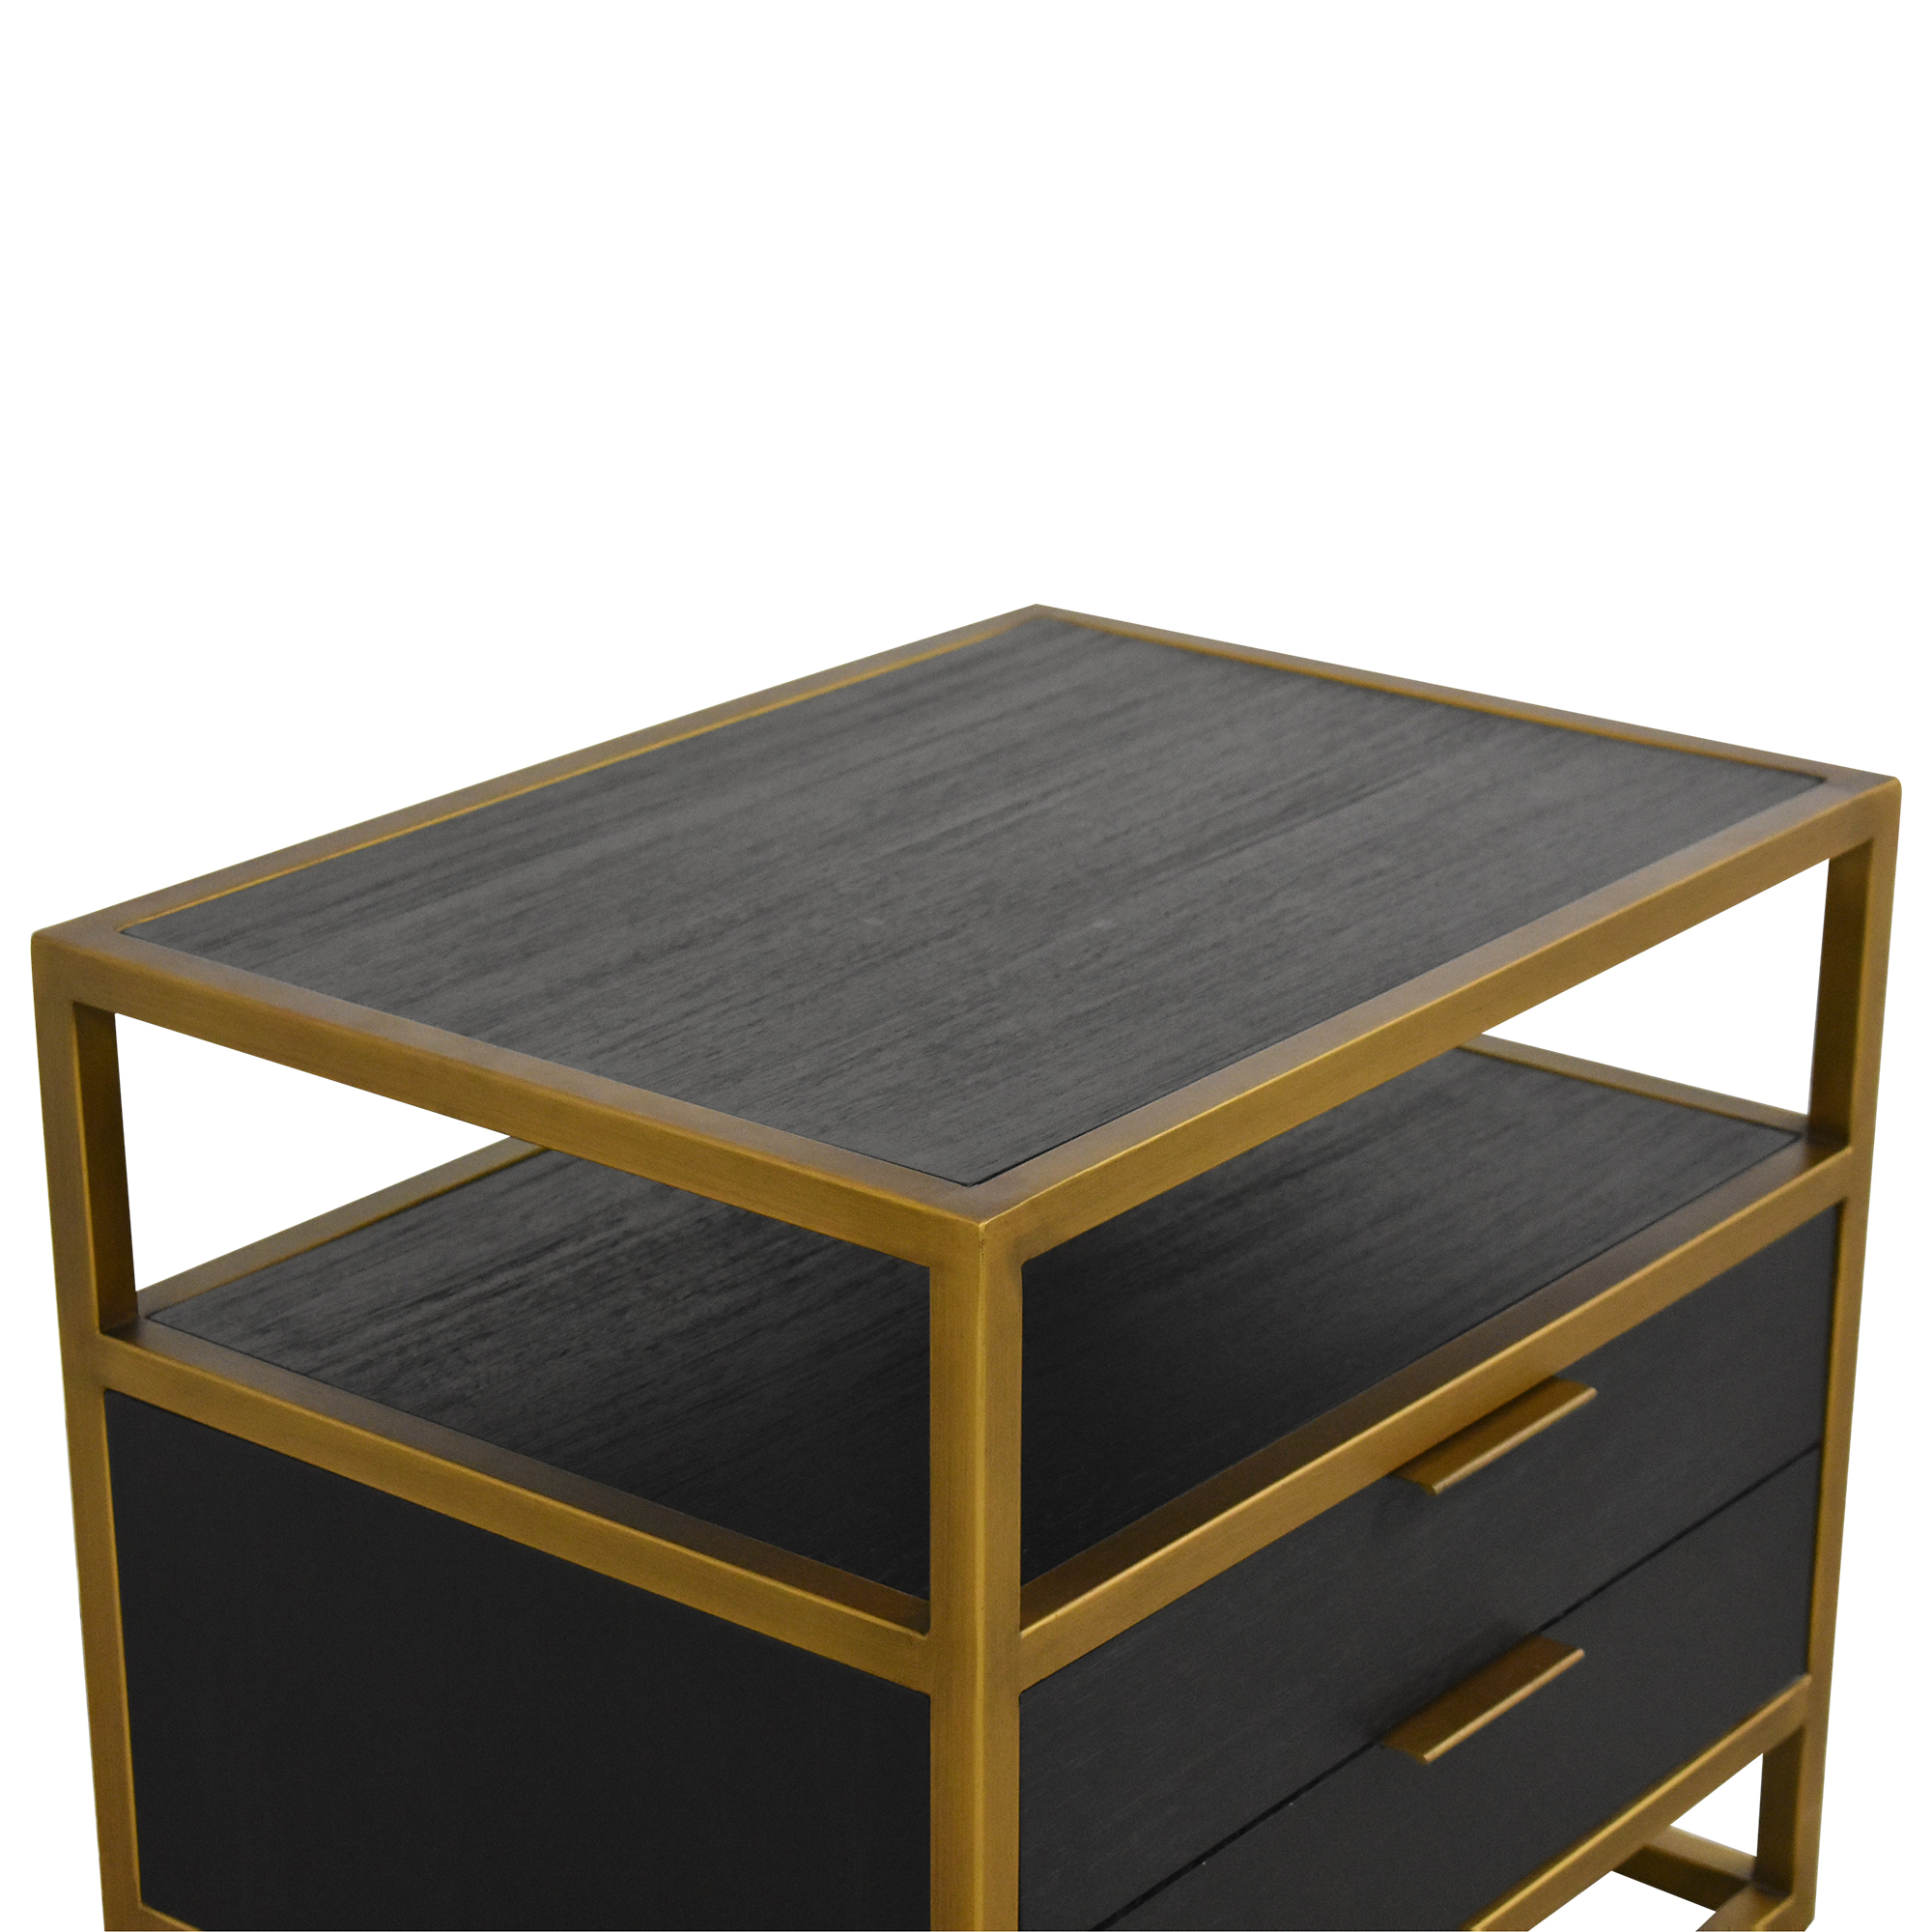 Crate & Barrel Crate & Barrel Oxford Two Drawer Nightstand